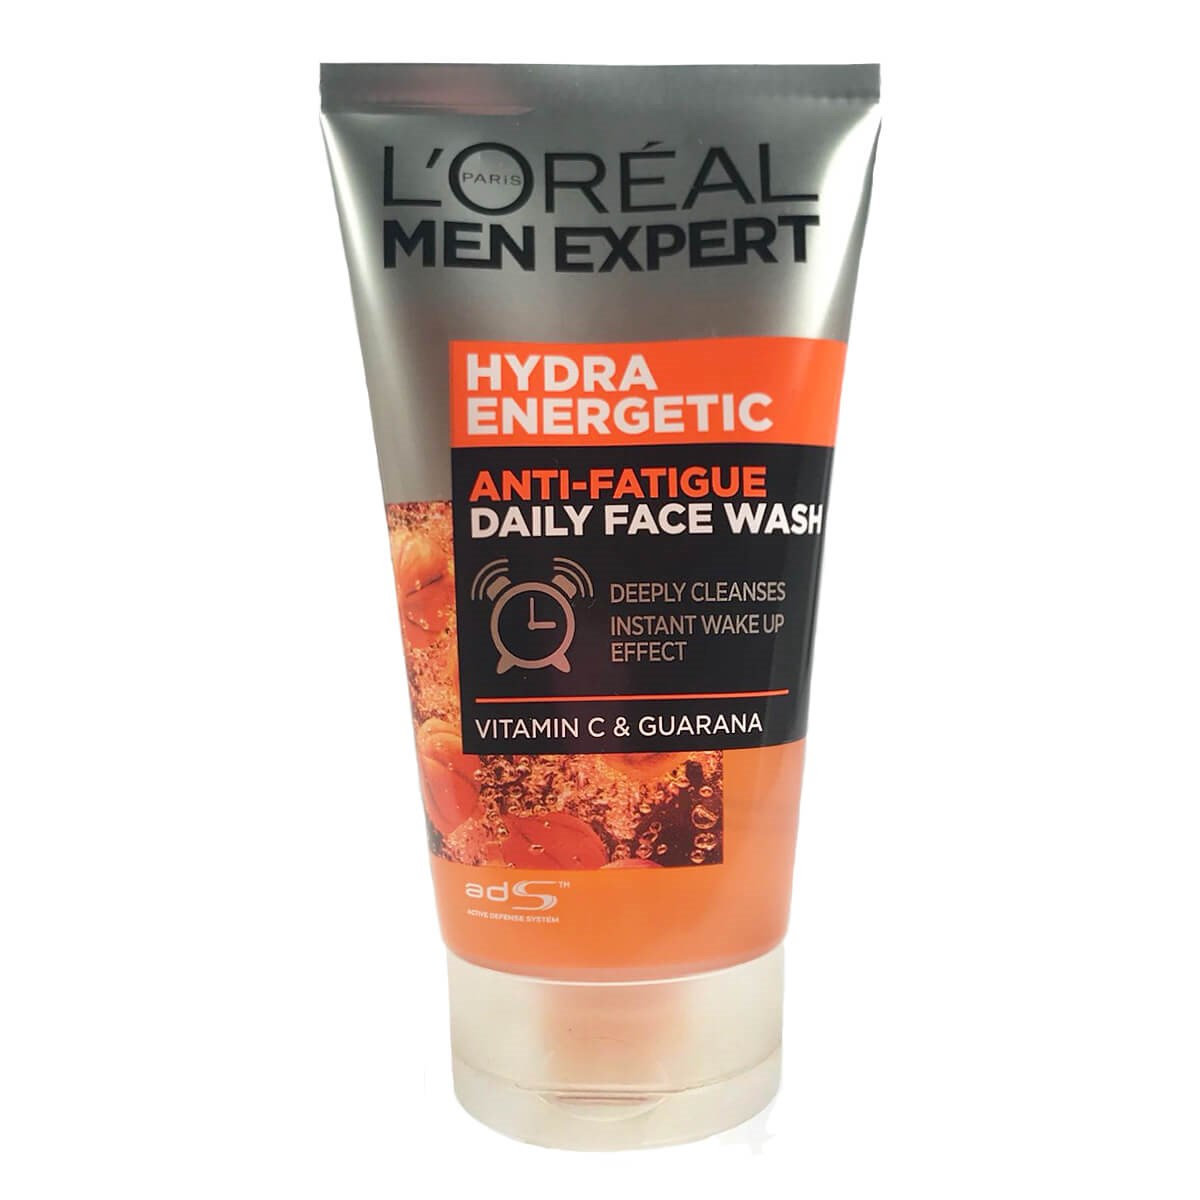 L'Oreal Men Expert Hydra Energetic Anti-Fatigue Daily Face Wash